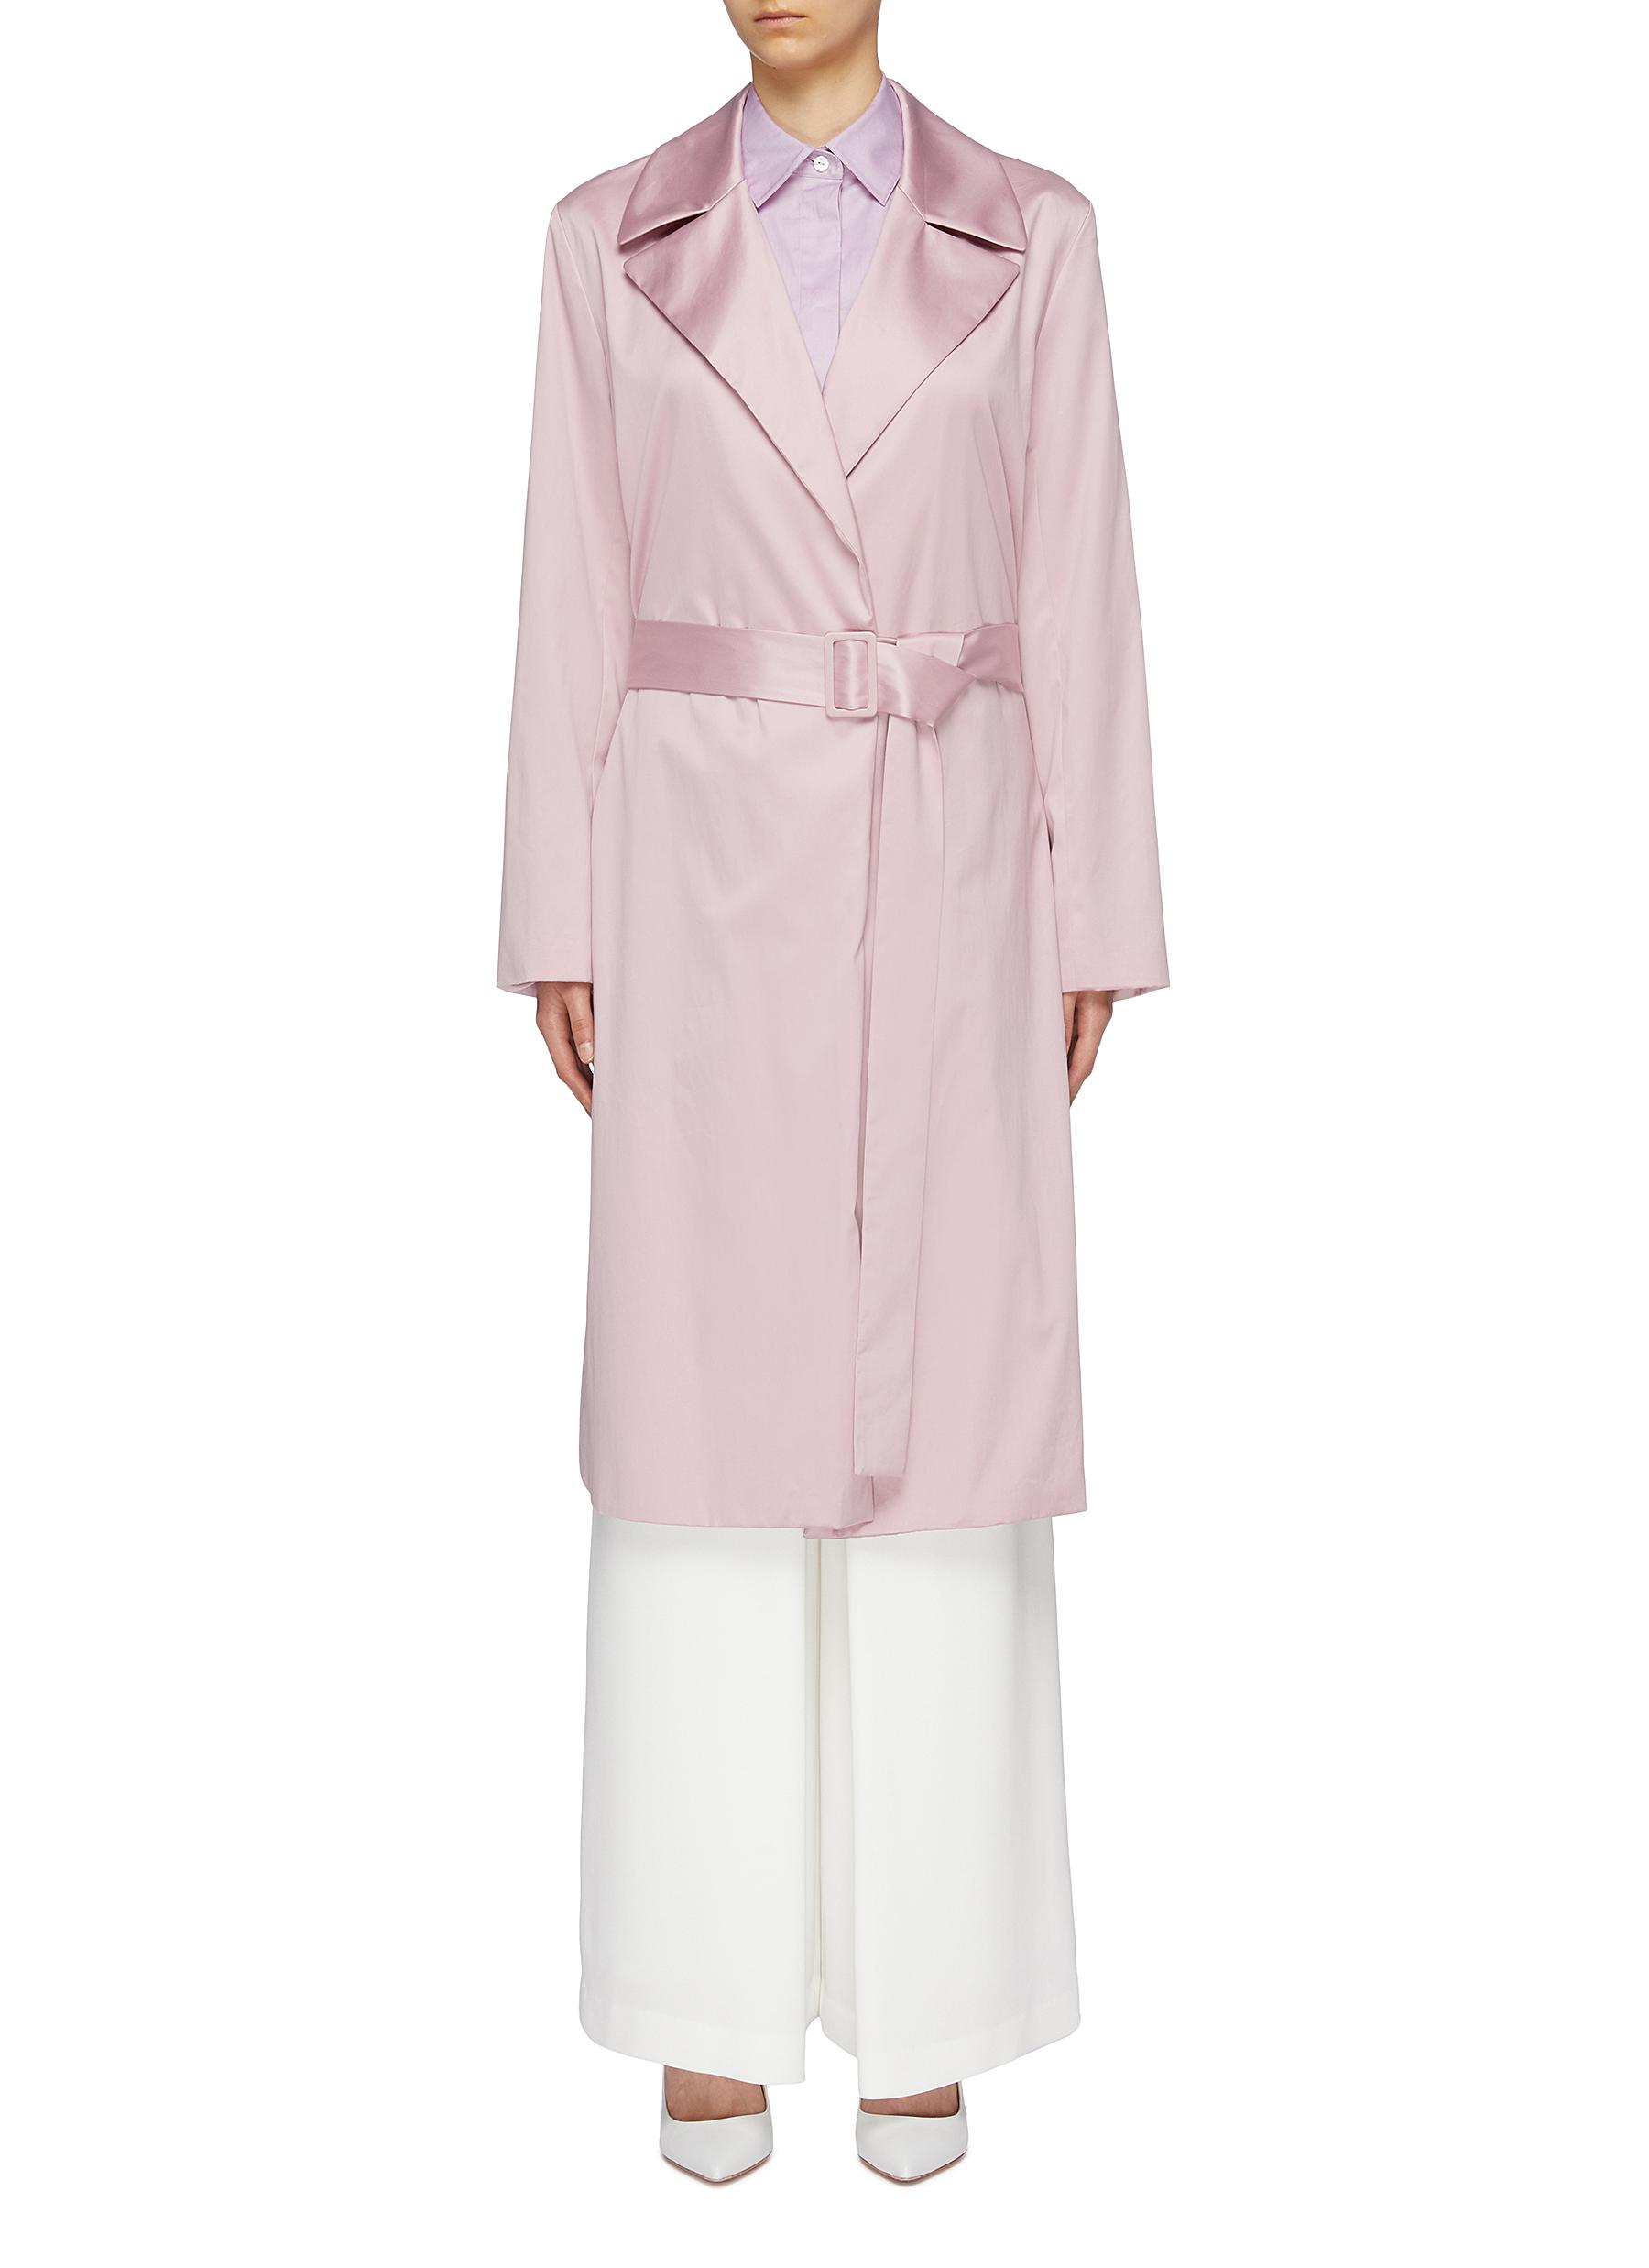 cec4ed0cf5 Main View - Click To Enlarge - THEORY - Belted cotton chintz trench coat